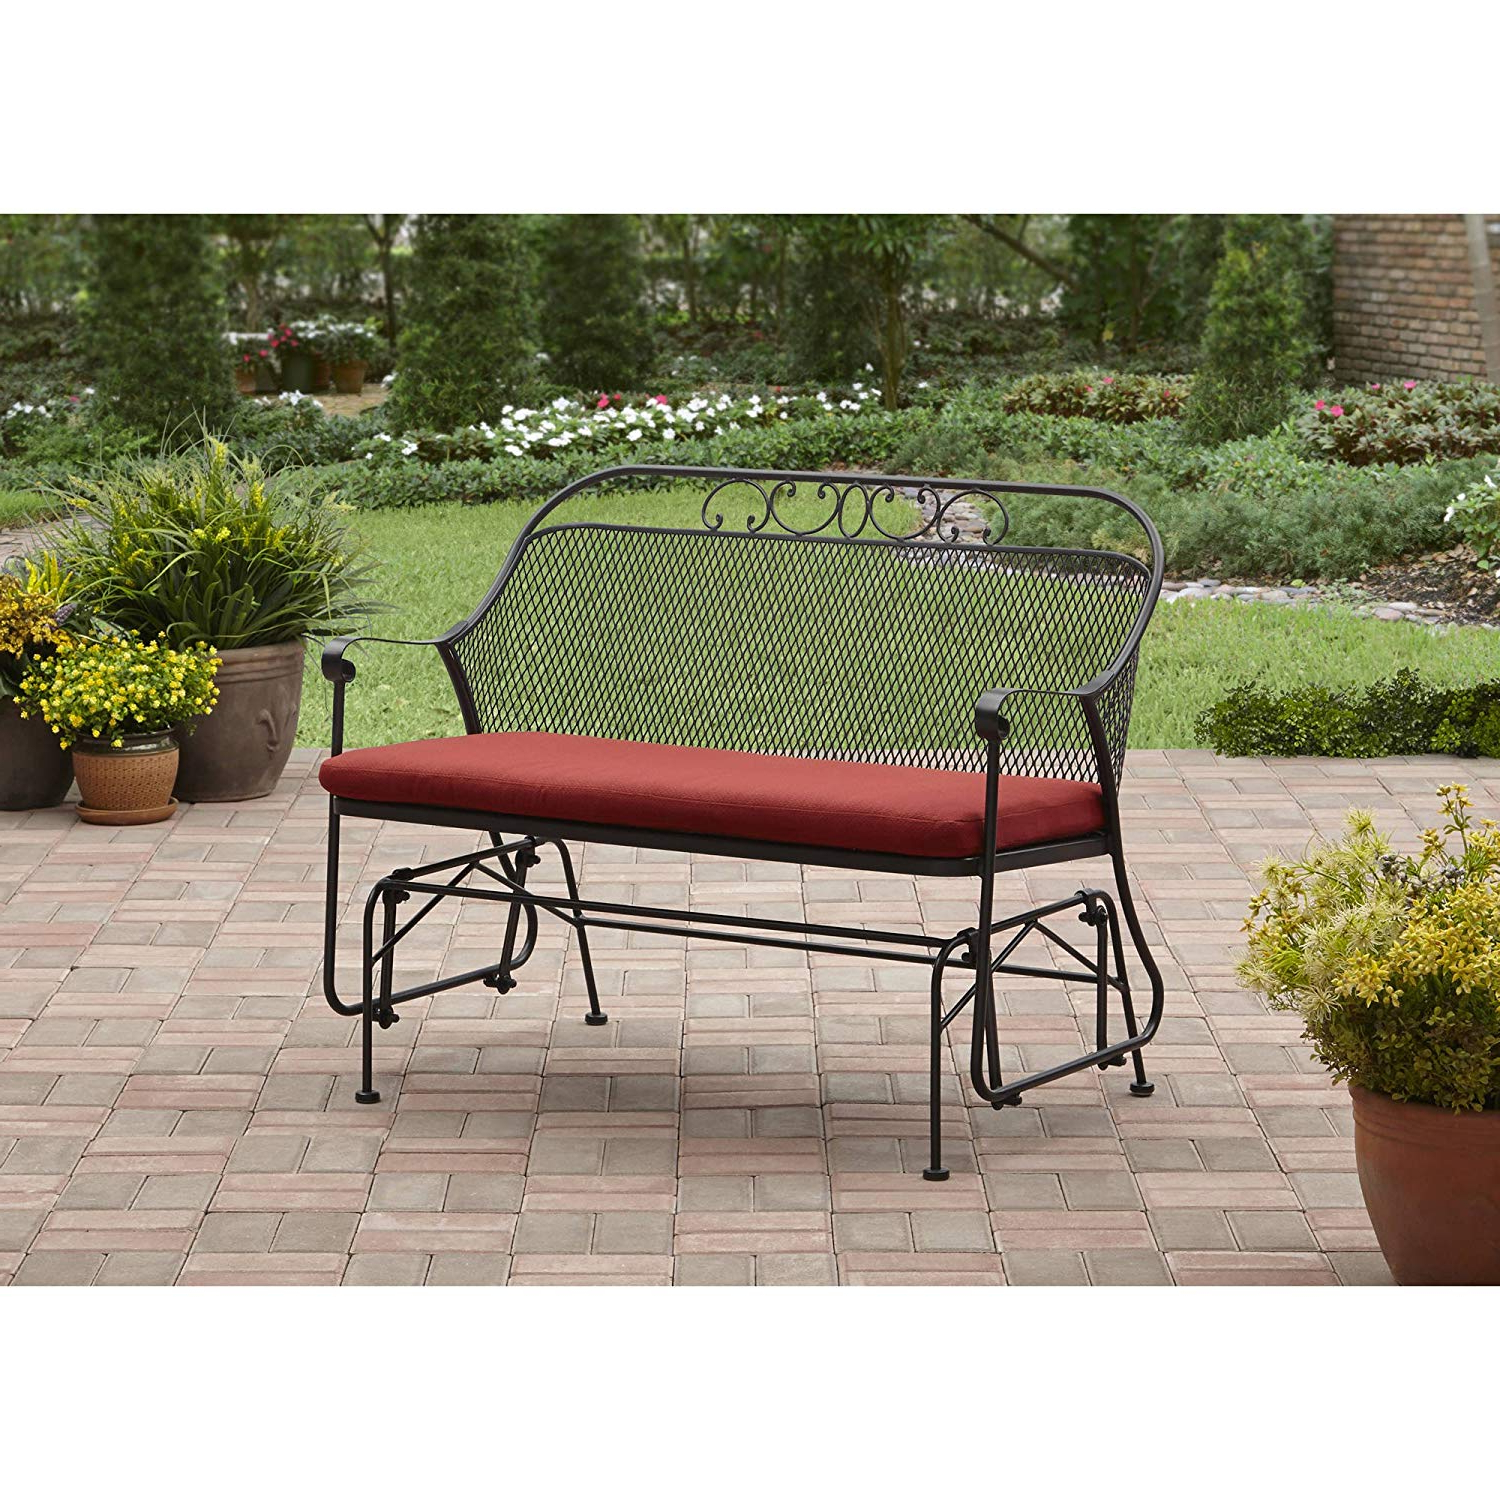 Outdoor Retro Metal Double Glider Benches Throughout Trendy Cheap Glider Red, Find Glider Red Deals On Line At Alibaba (Gallery 23 of 30)